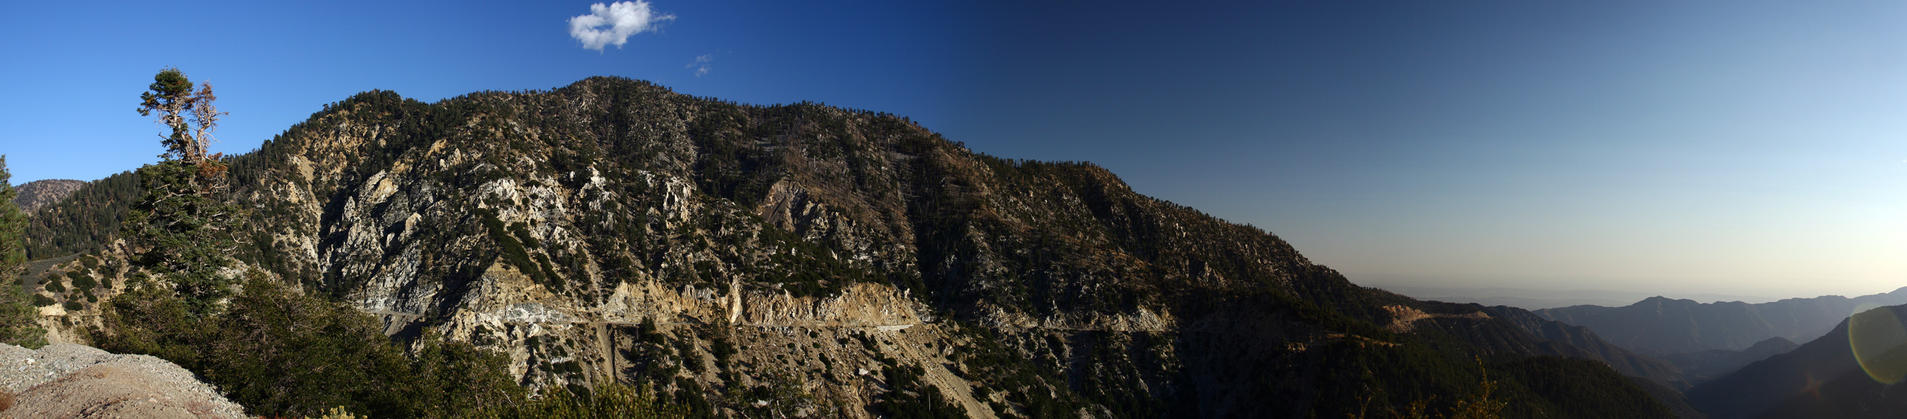 Angeles National Forest Oct 11 by thzinc